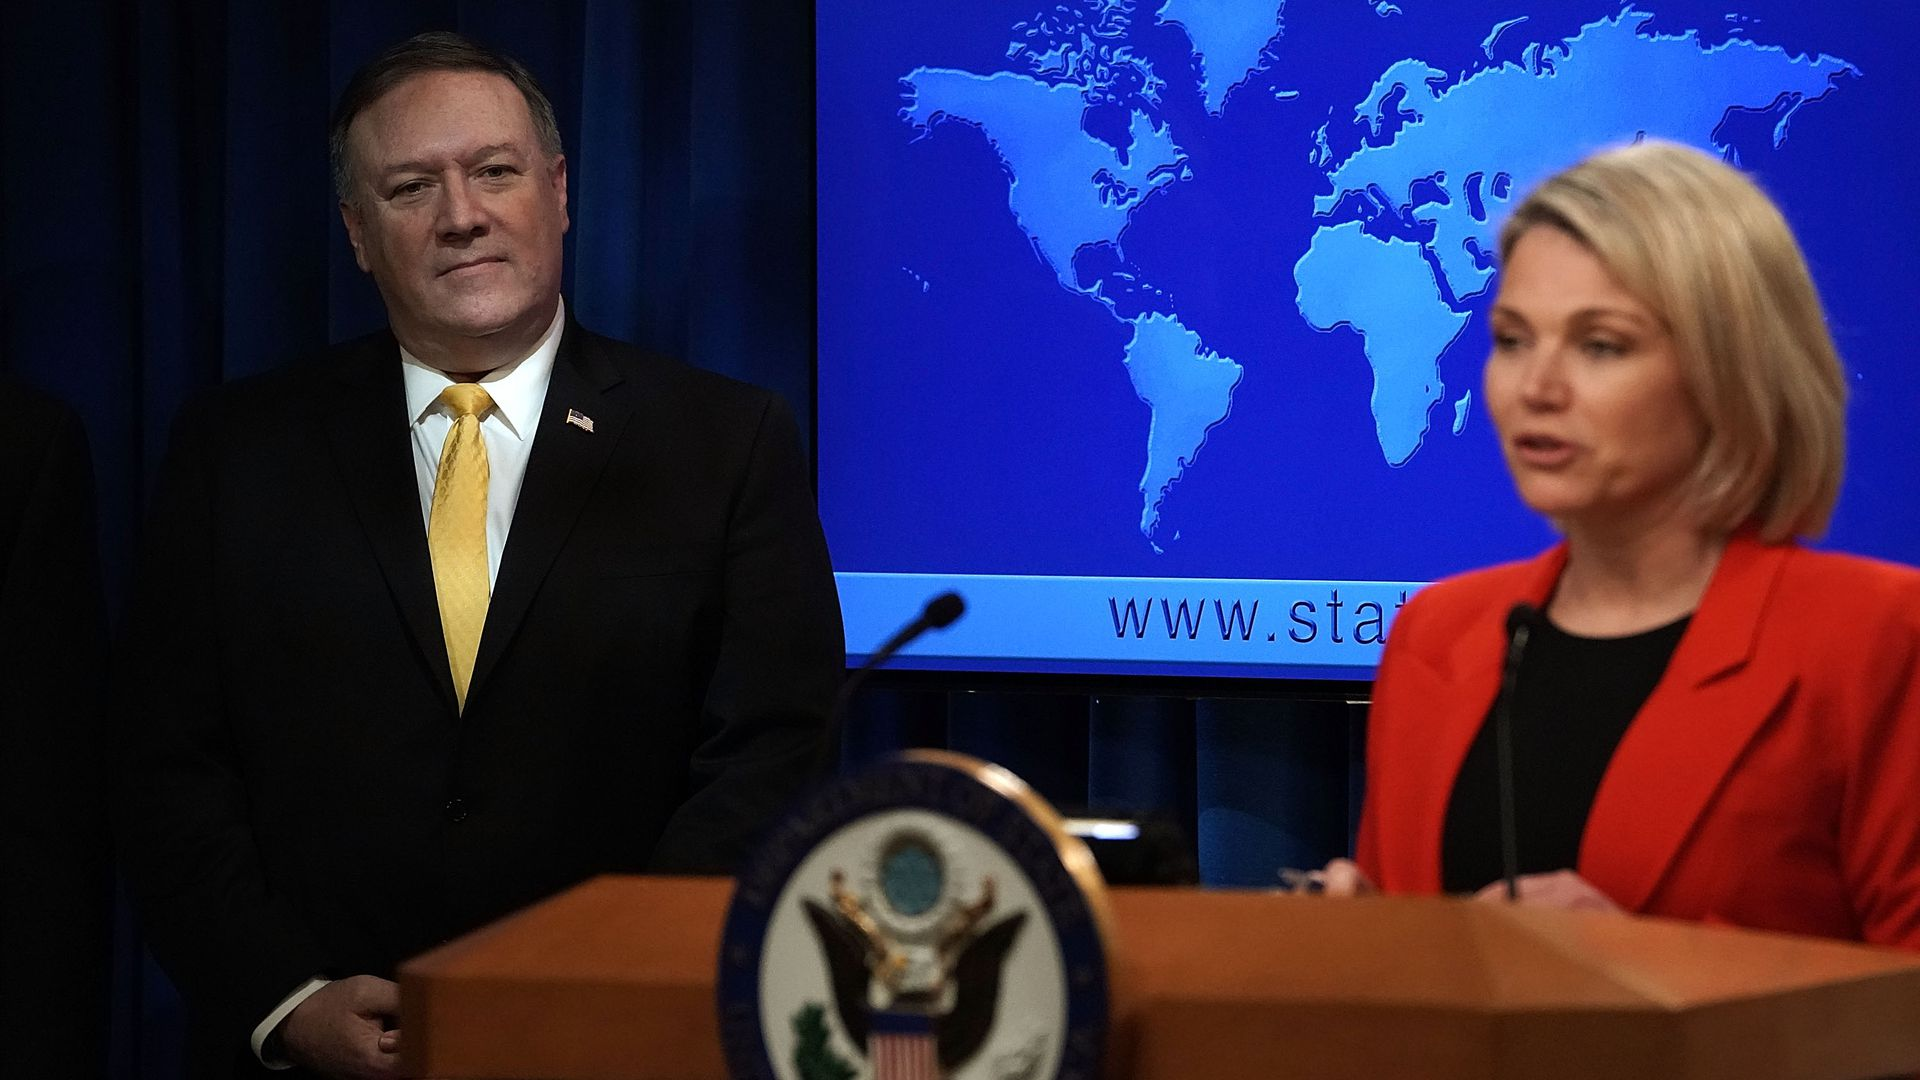 State Dept spokeswoman Heather Nauert speaks at a podium while Mike Pompeo watches from behind